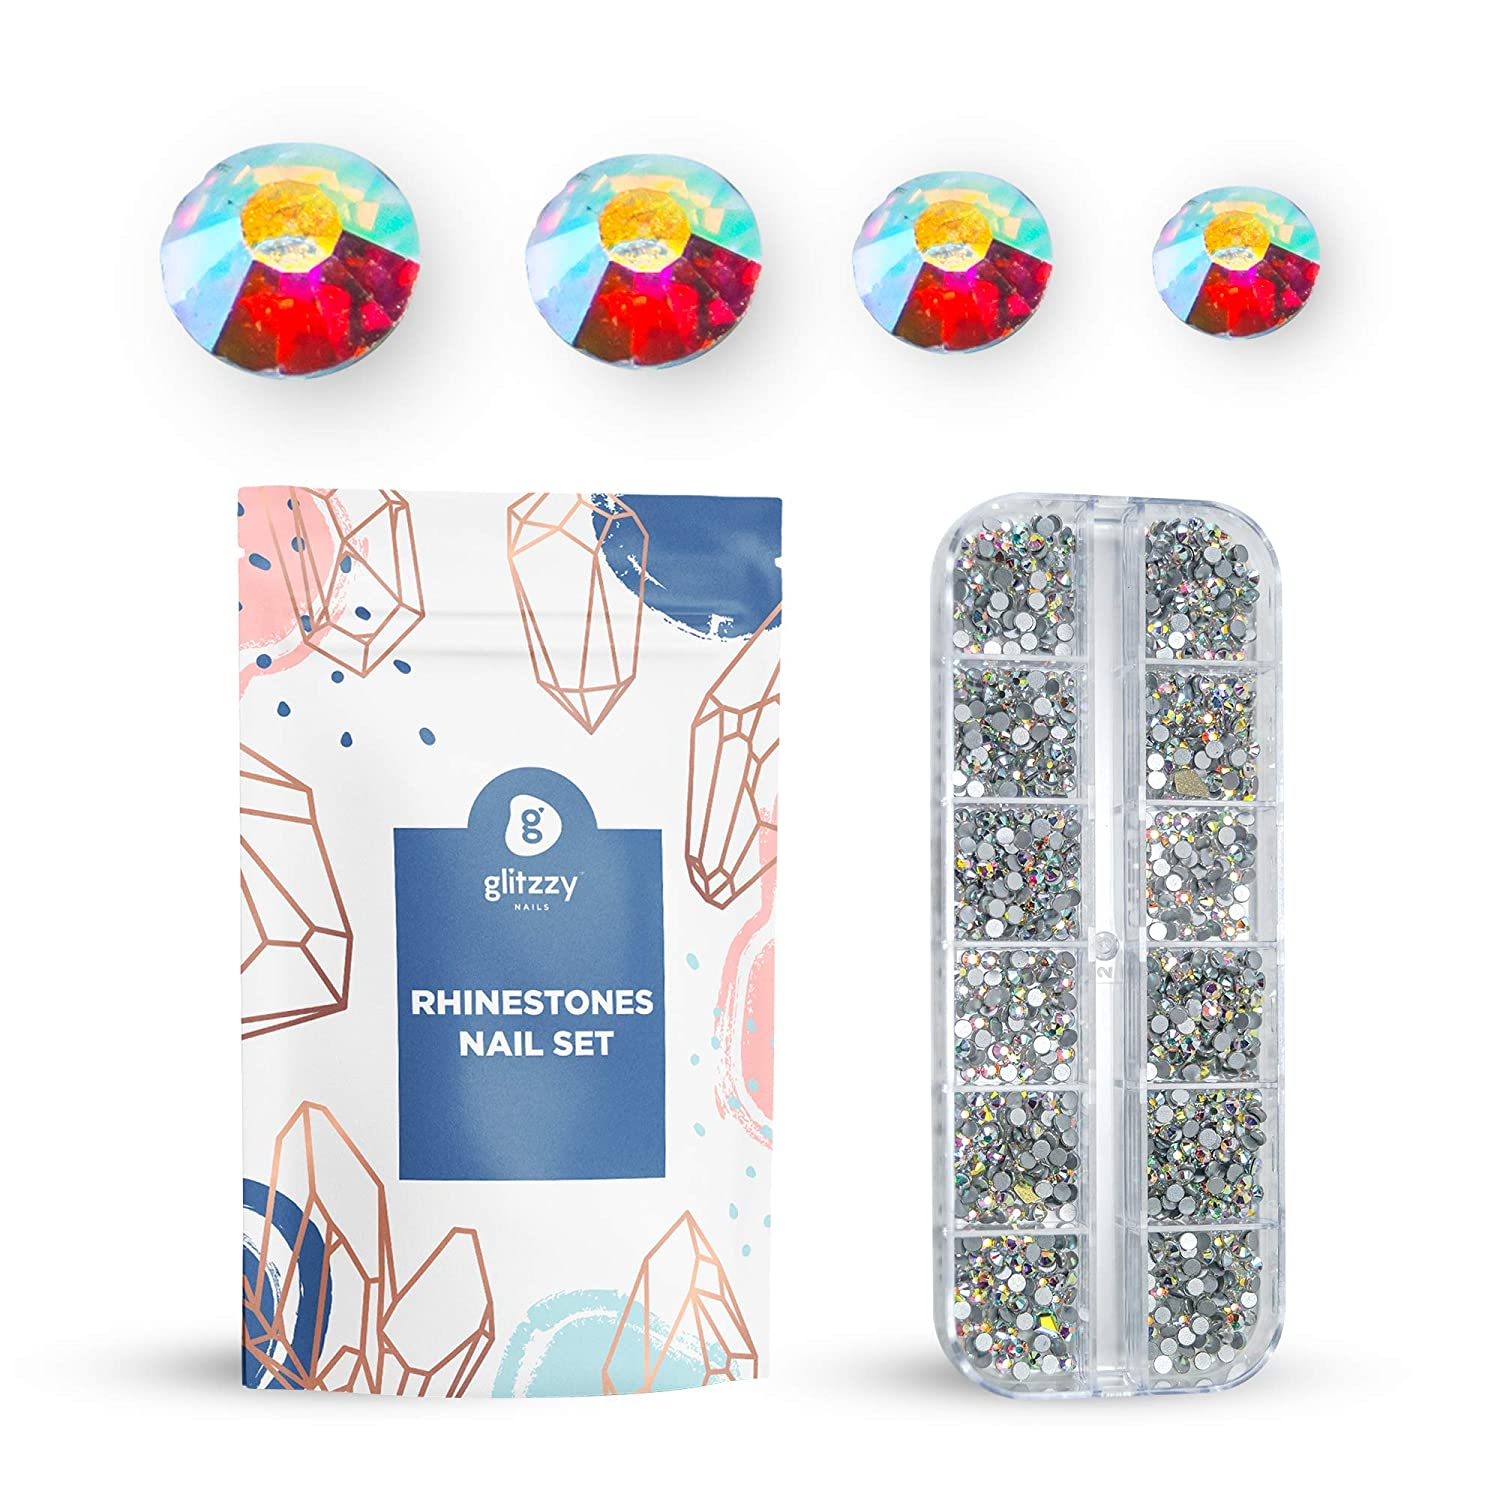 glitzzy 5760 Sales for All items in the store sale AB crystal rhinestones decorations a nail